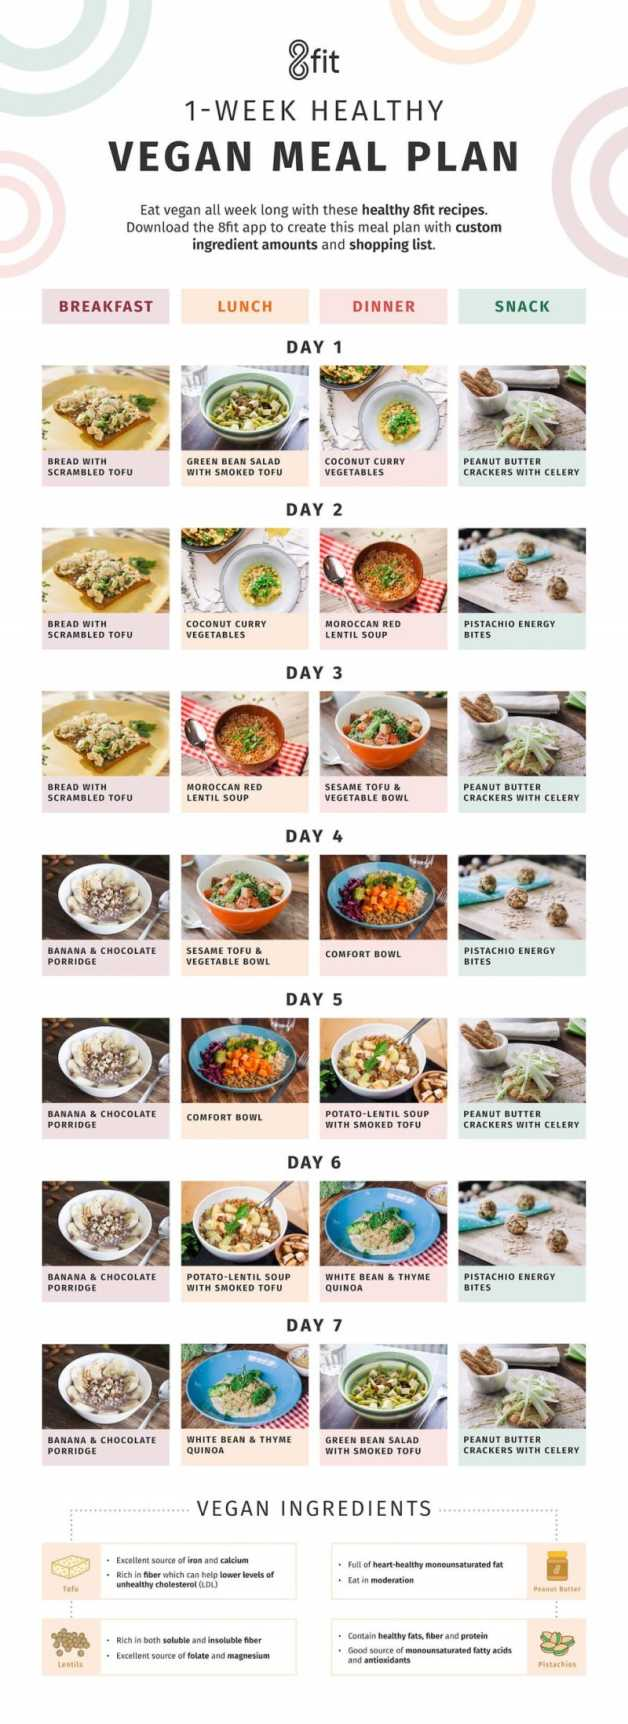 1-week-vegan-meal-plan-full